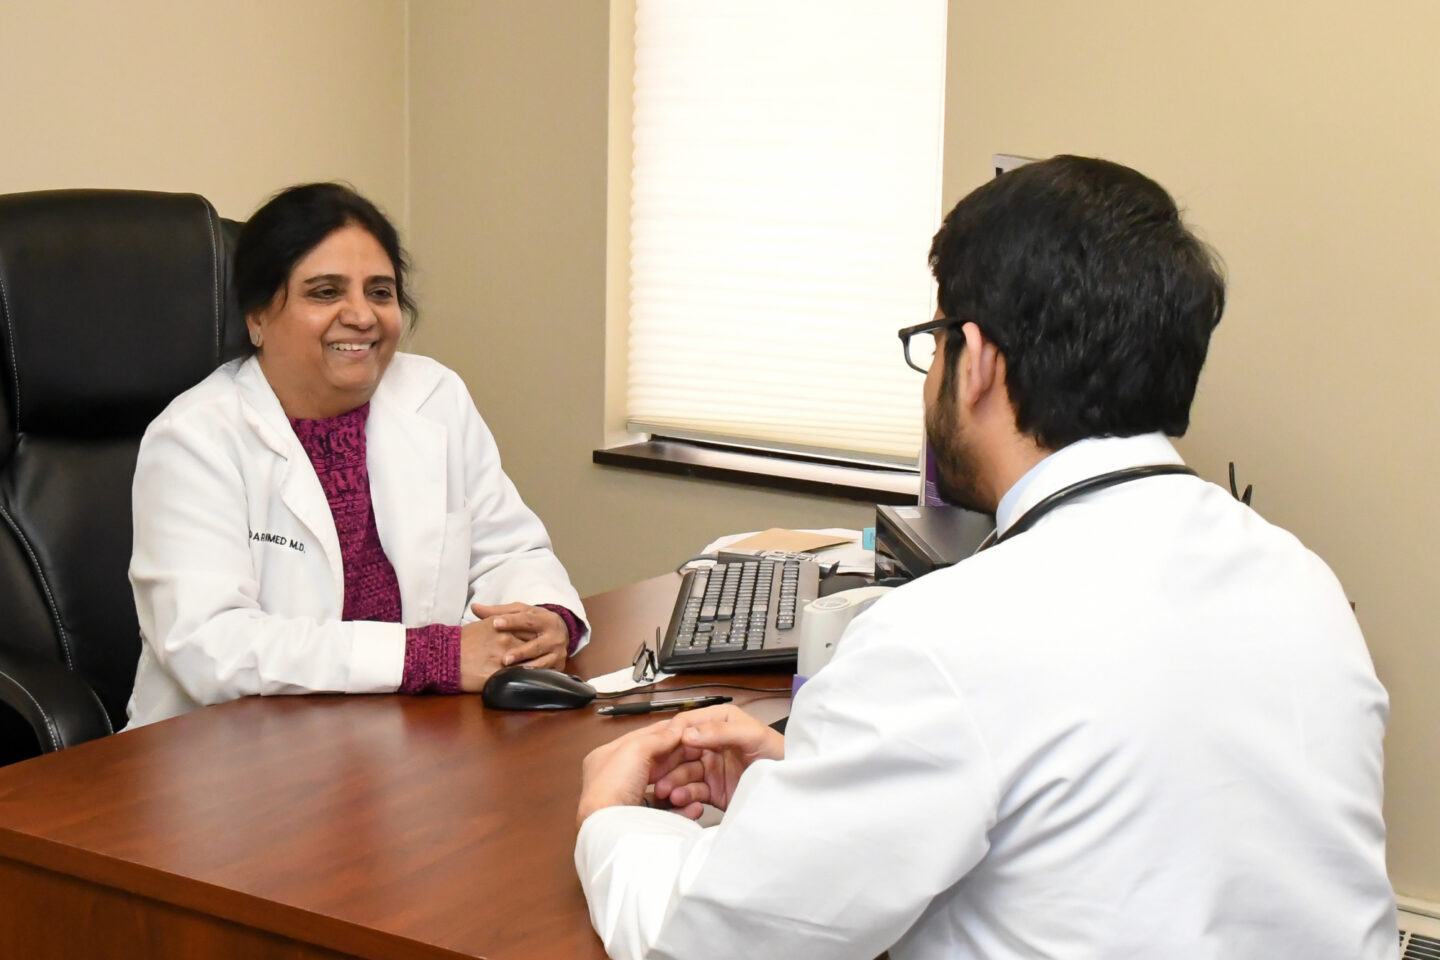 Faculty physician Bader Ahmed MD talks over a patient case with a resident physician at the Hurley Combined Medicine/Pediatrics Resident Clinic.